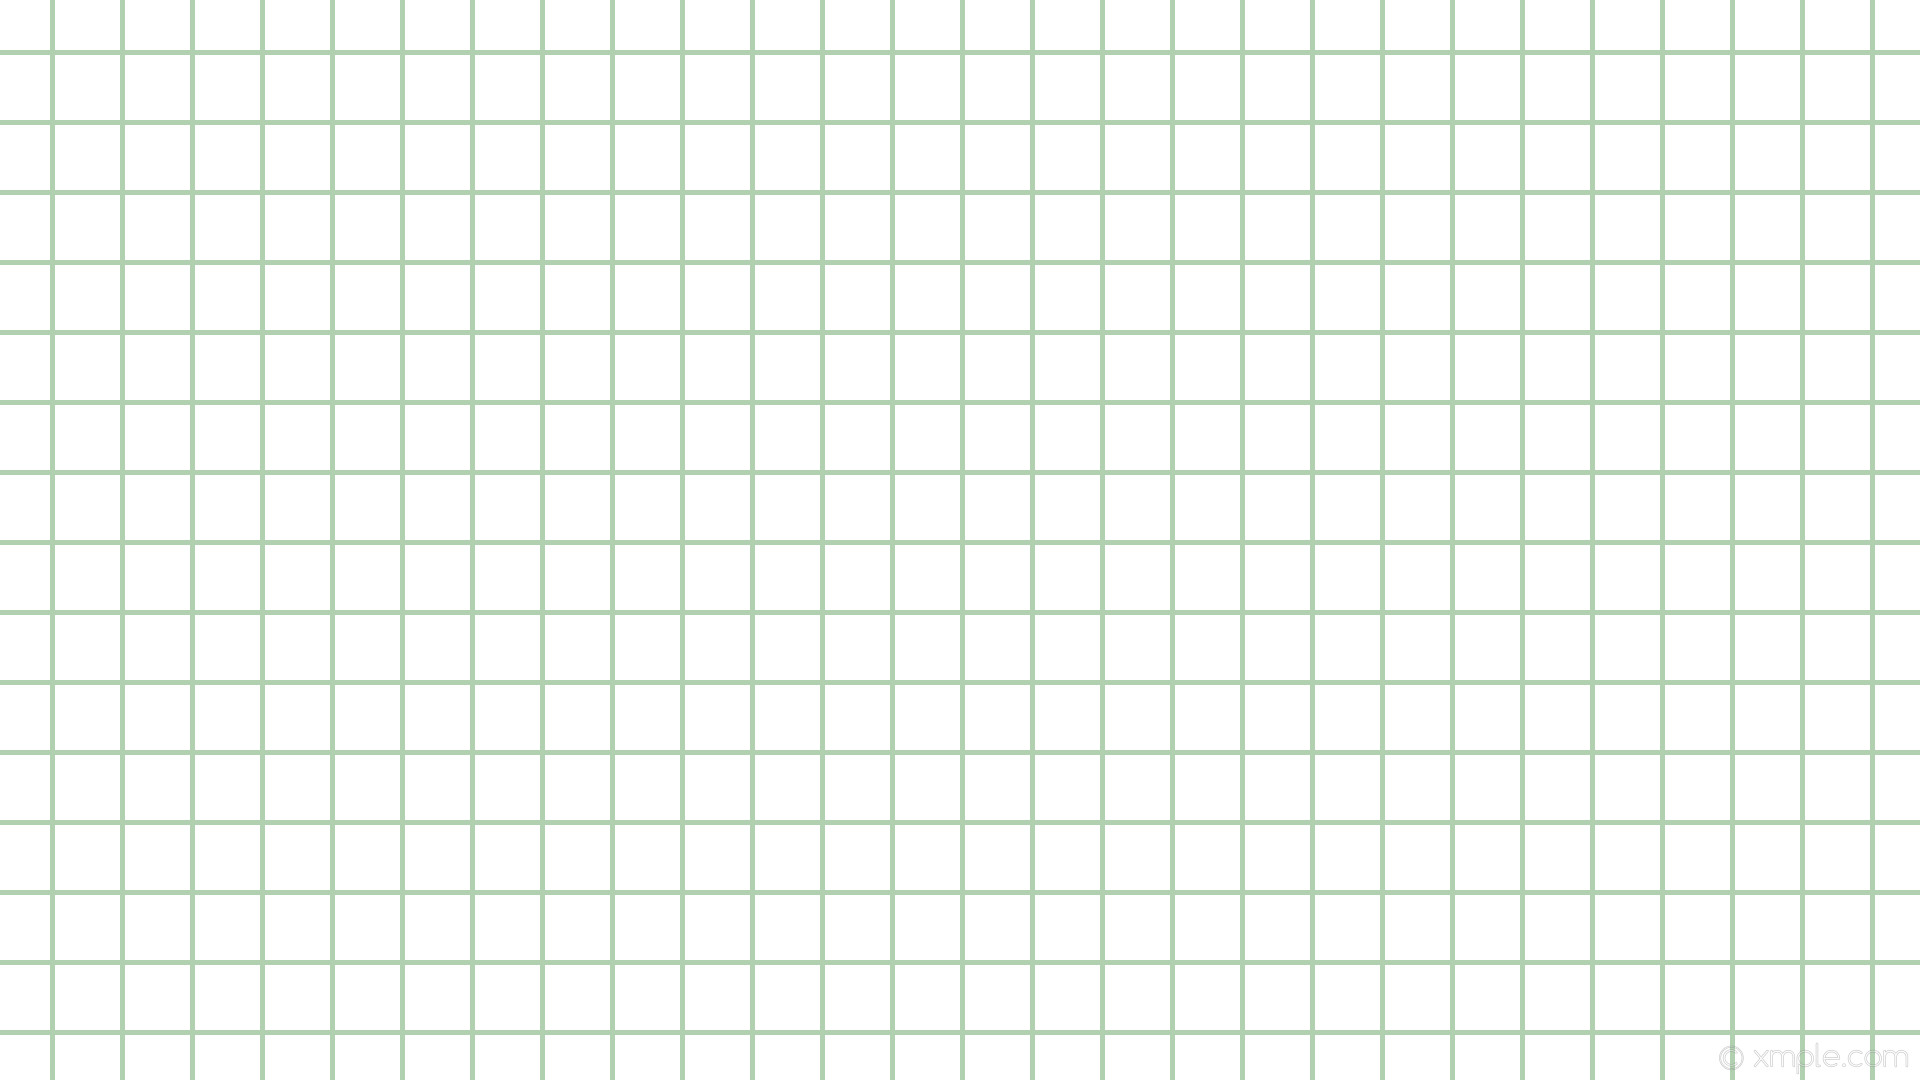 1920x1080 Wallpaper graph paper green white grid #ffffff #8fbc8f 0 .